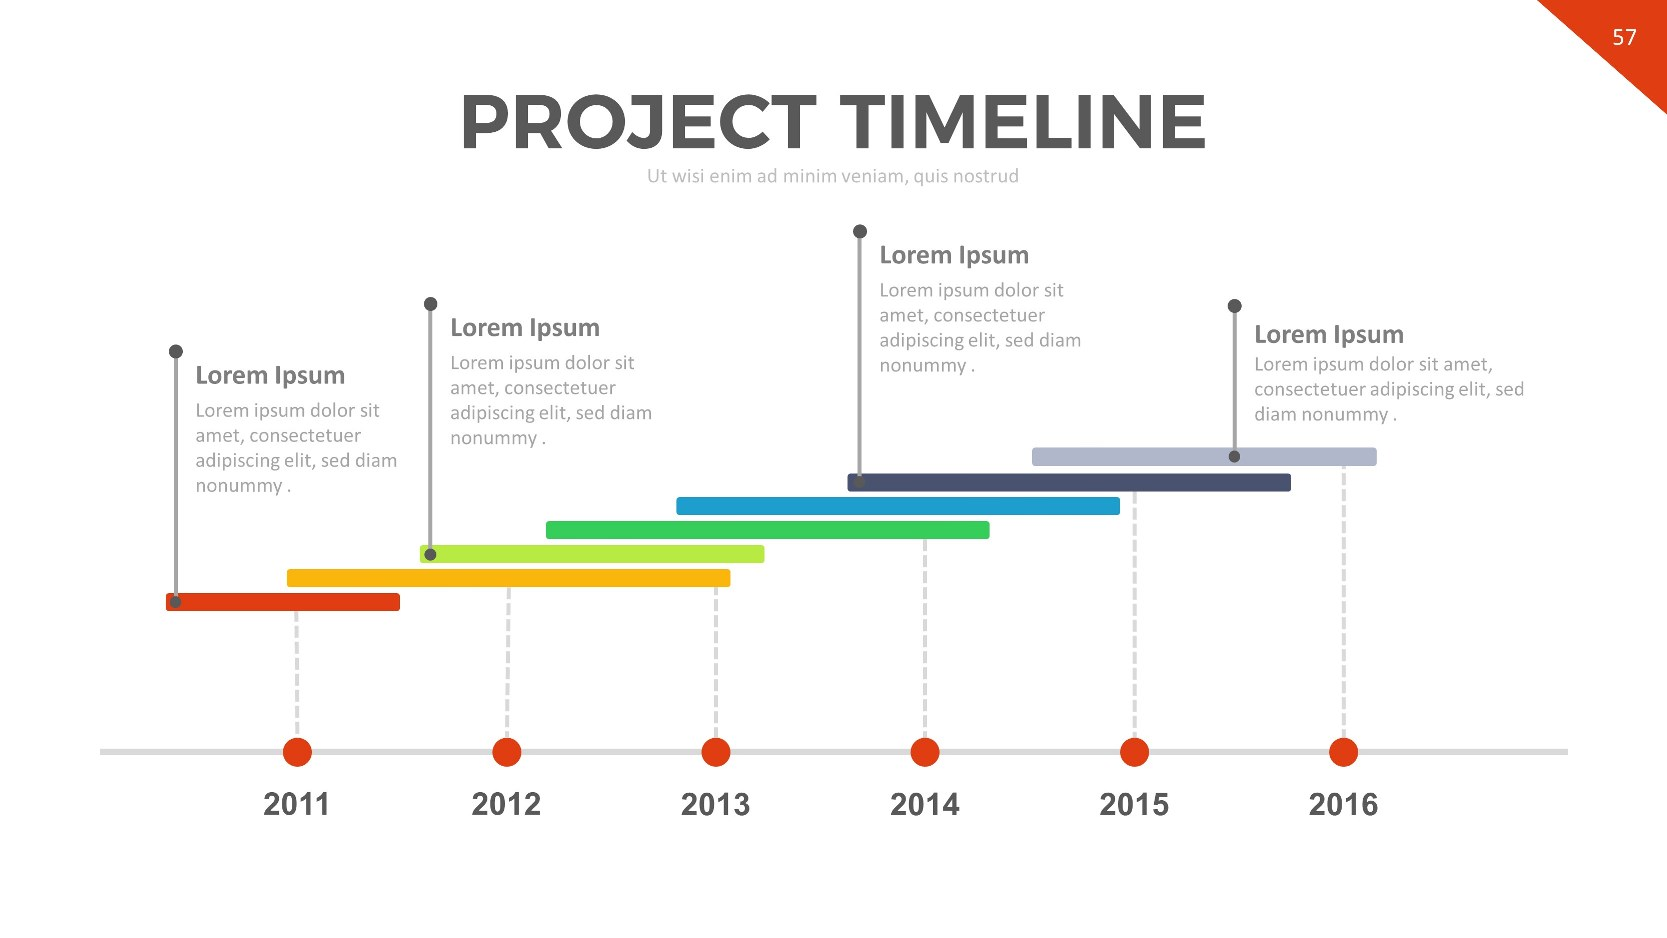 project timelines The negative impacts of long project timelines, and the risks that come with them, can be lessened through combining different acquisition strategies and overlapping the entry into and exit from service dates of new equipment.